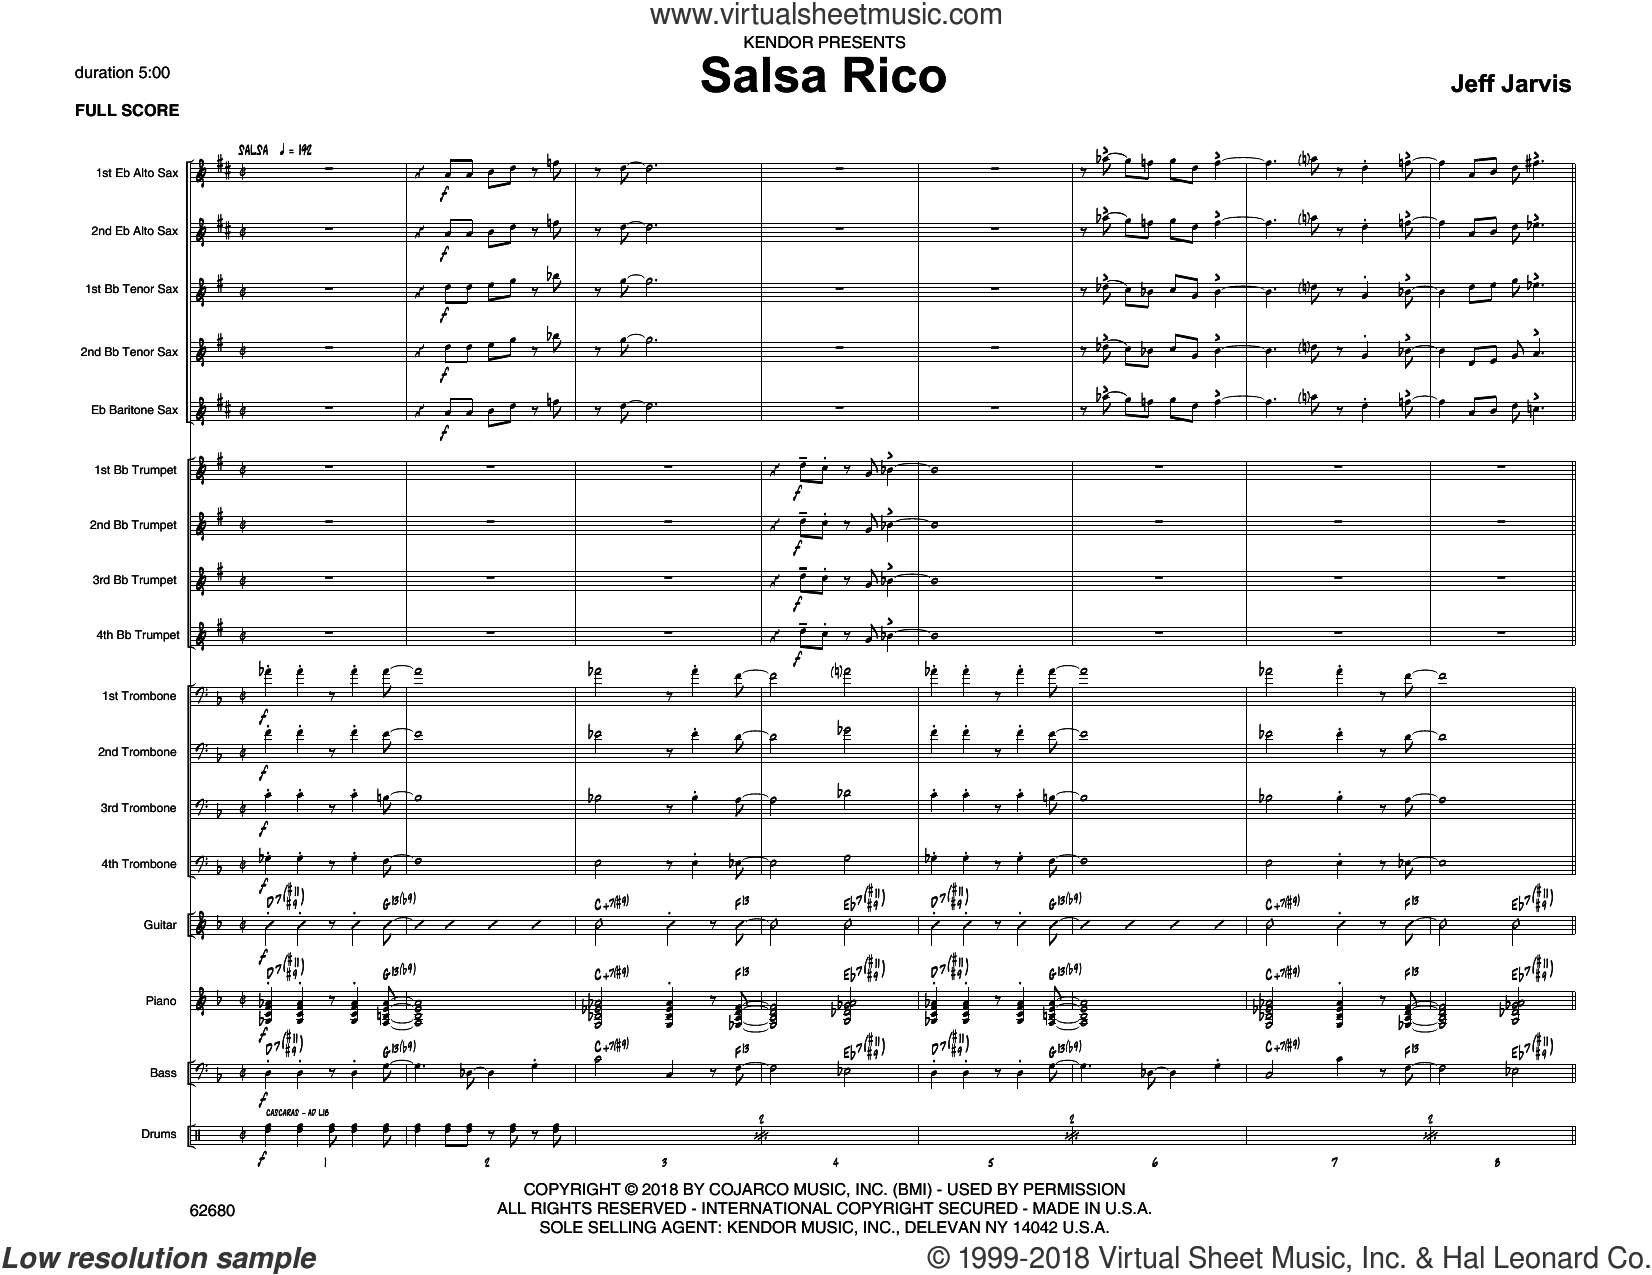 Salsa Rico (COMPLETE) sheet music for jazz band by Jeff Jarvis, intermediate skill level